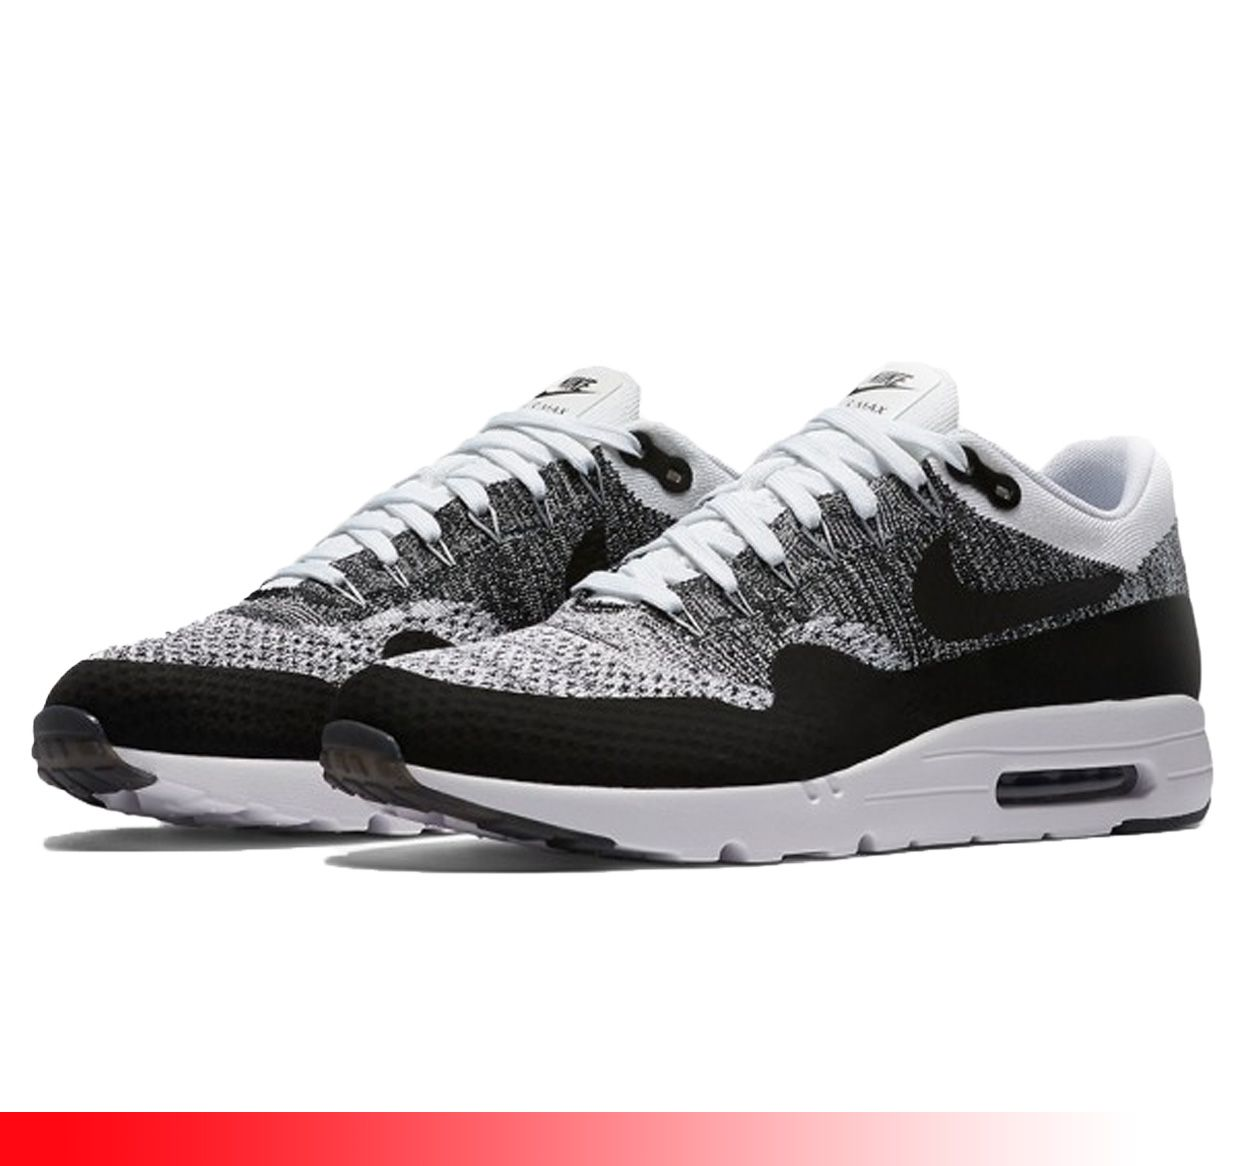 best service ffaec bdbaa ... Correlate Sneakers might have to try! https   shoenext.com nike-air-max-malaysia  Shop